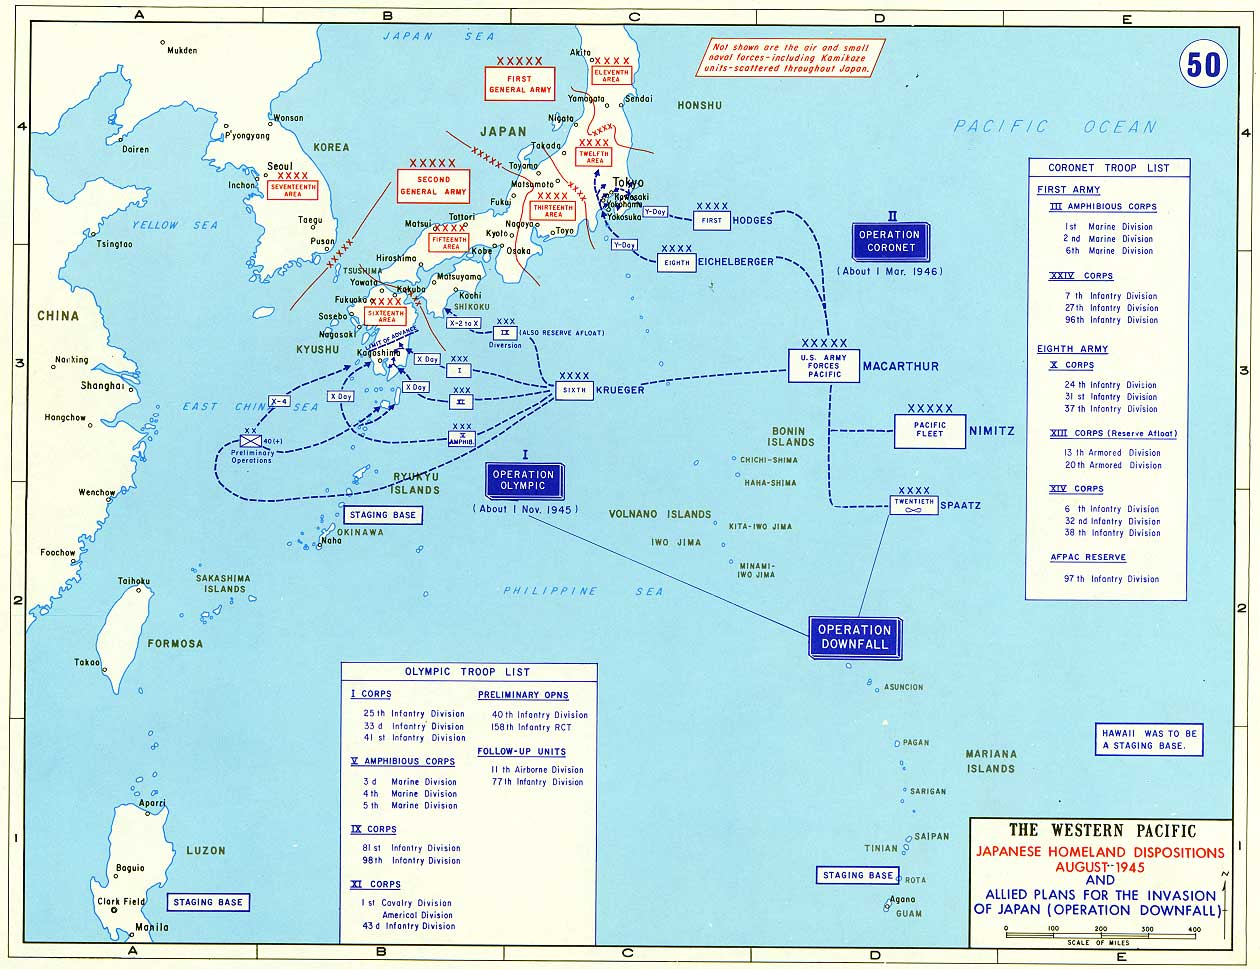 Japanese home islands invasion map operation downfall japanese home islands invasion map operation downfall american history famous historical events tragedies and triumphs gumiabroncs Choice Image